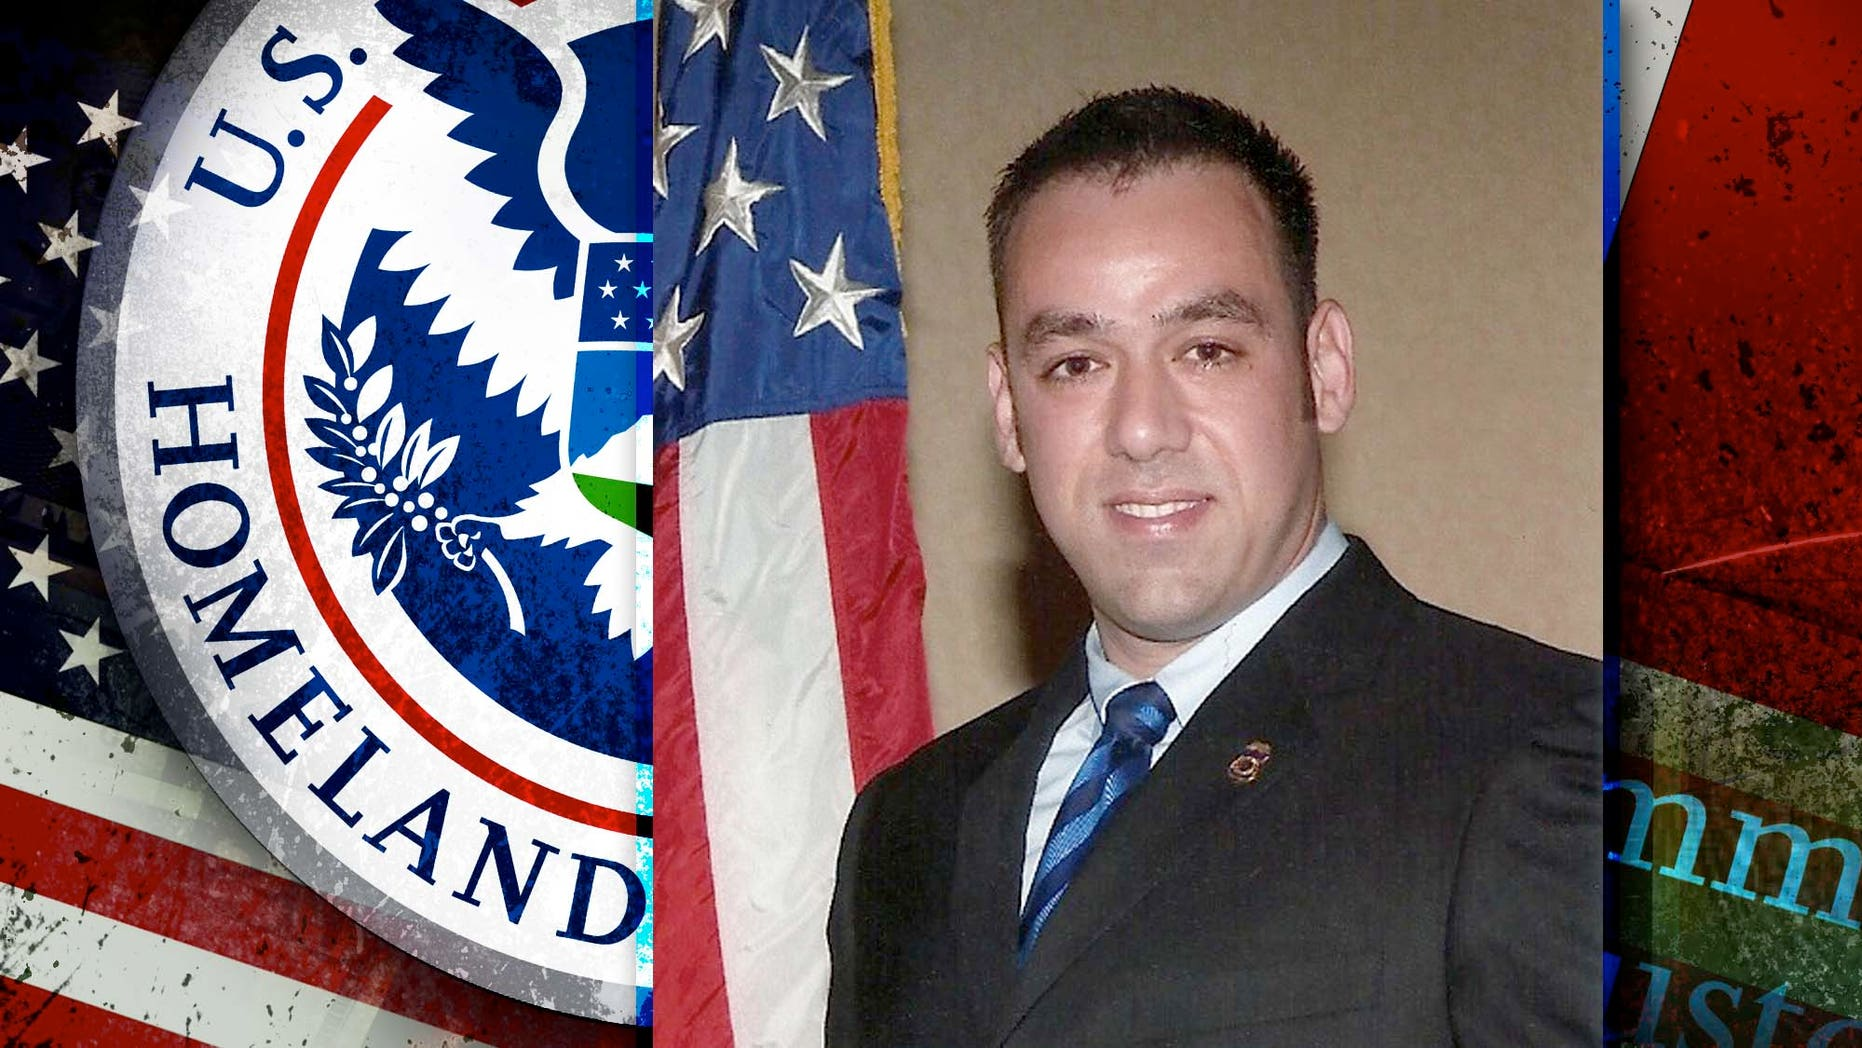 Feb. 16, 2011: In this undated photo released by U.S. Immigration and Customs Enforcement, ICE Special Agent Jaime Zapata is seen.  Zapata, on assignment to the ICE Attache in Mexico City from his post in Laredo, Texas, died Tuesday Feb. 15, 2011, when gunmen attacked as he and another agent drove through the northern state of San Luis Potosi. (AP/ICE)